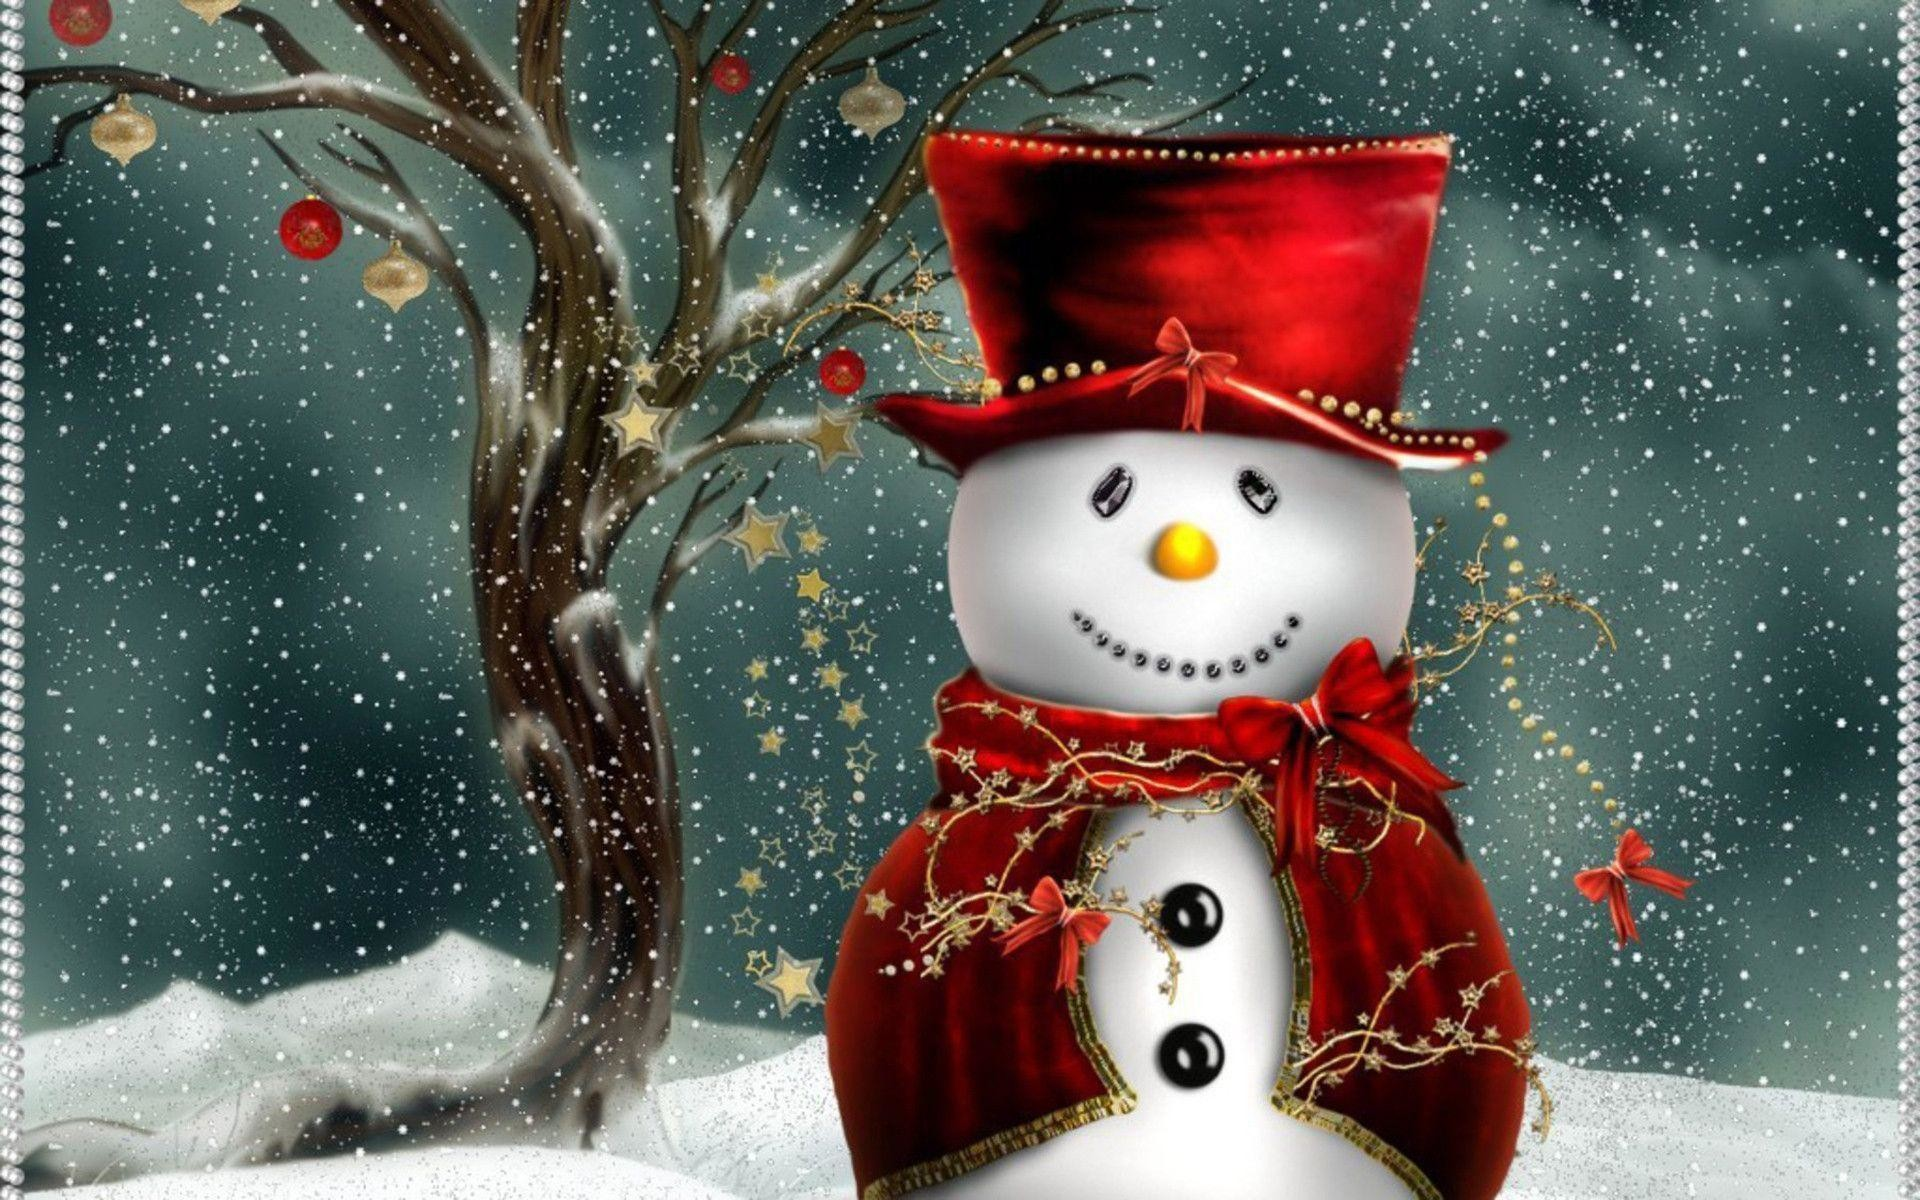 Res: 1920x1200, Cute Christmas Wallpaper | Wallpapers9